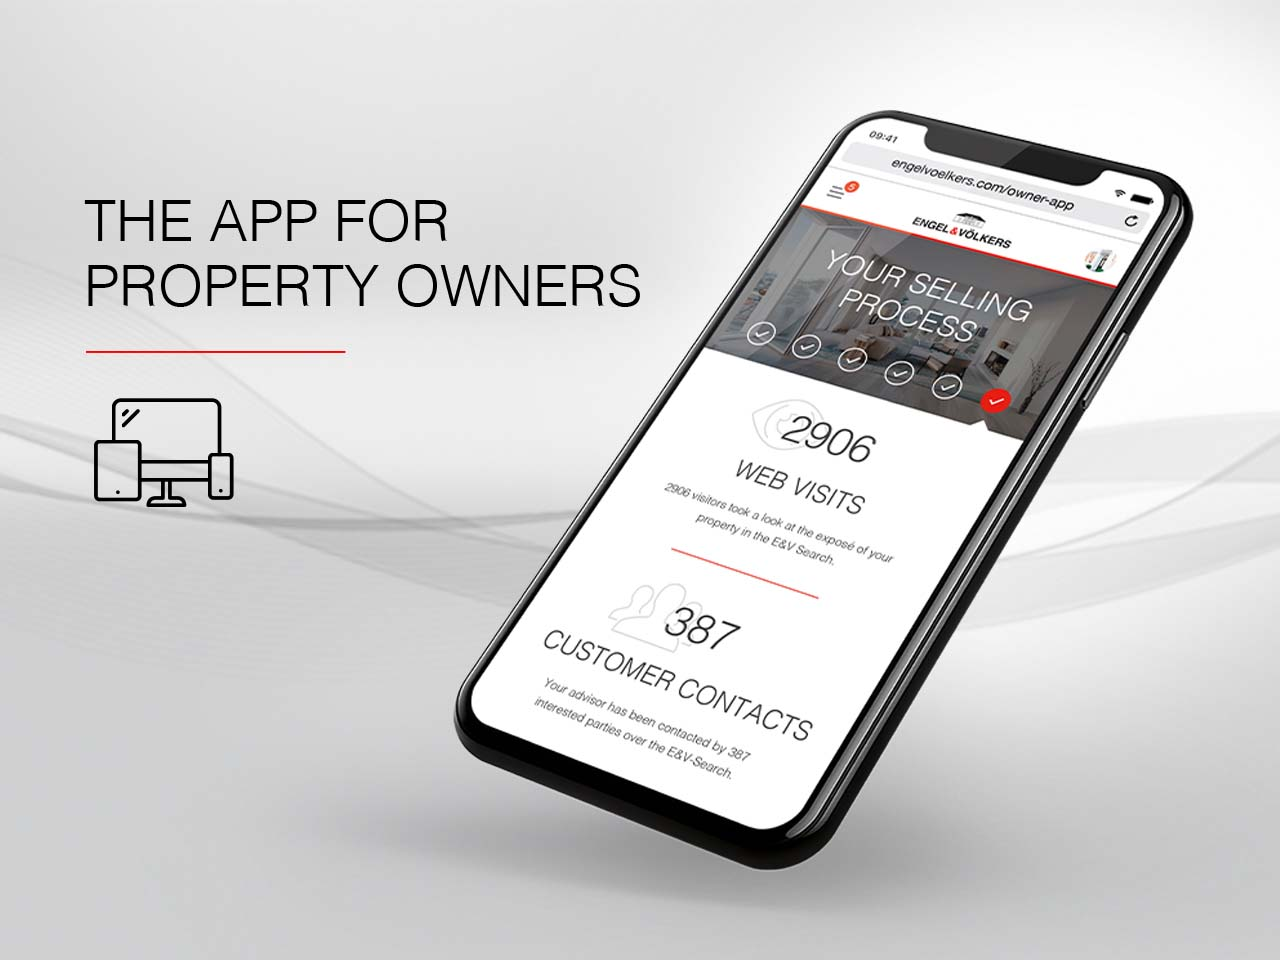 The Engel & Völkers Owner app